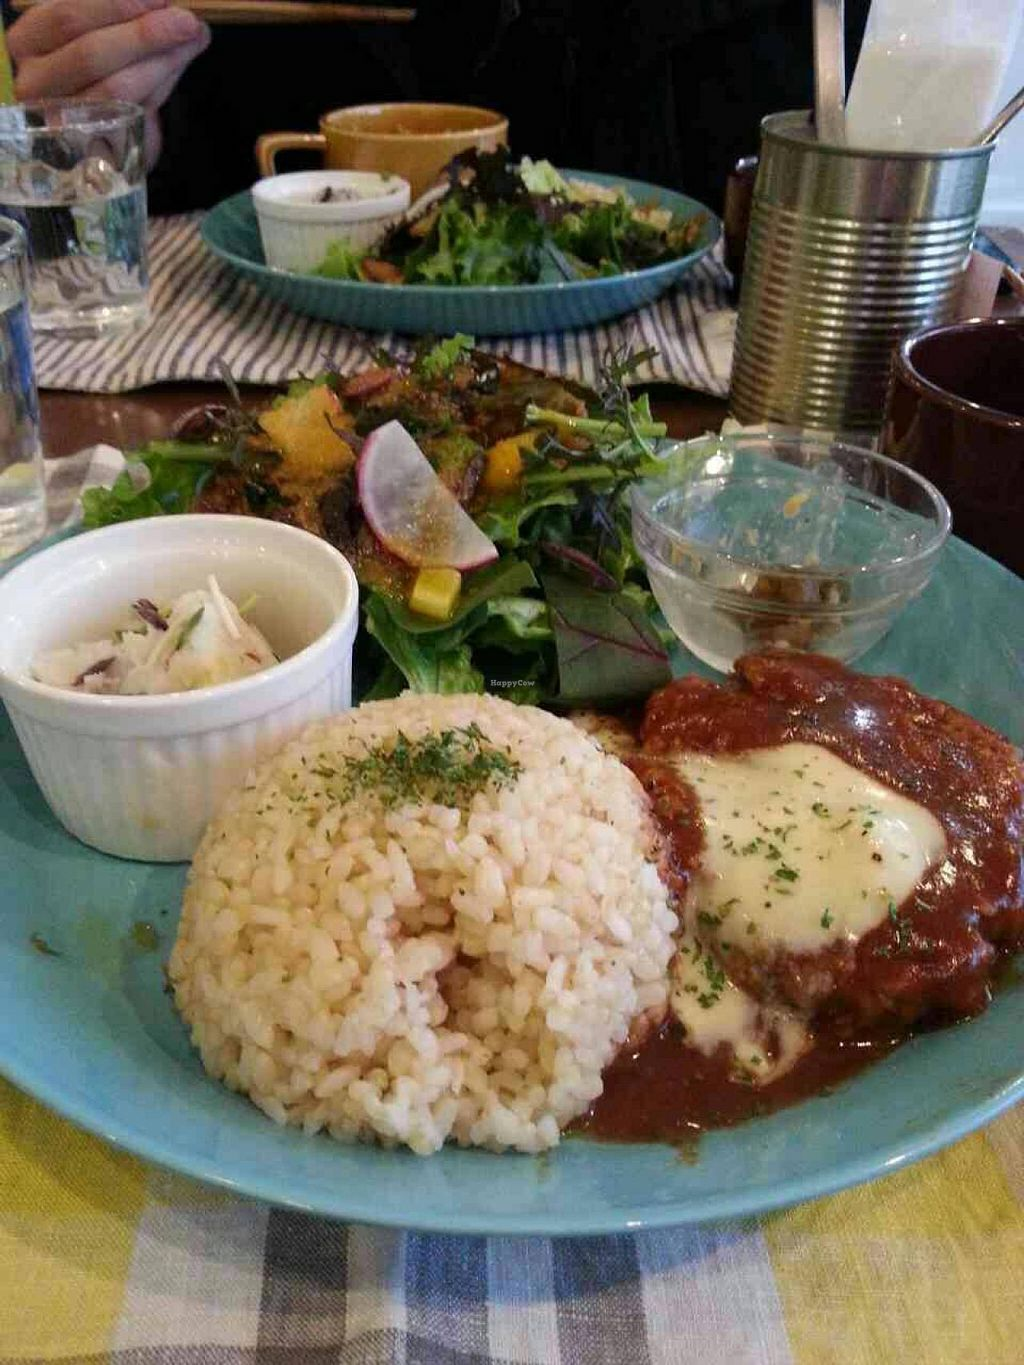 "Photo of CLOSED: The PINK WEED Cafe  by <a href=""/members/profile/necius"">necius</a> <br/>Soy-meat hamburg steak at The PINK WEED Cafe <br/> January 17, 2015  - <a href='/contact/abuse/image/46363/90582'>Report</a>"